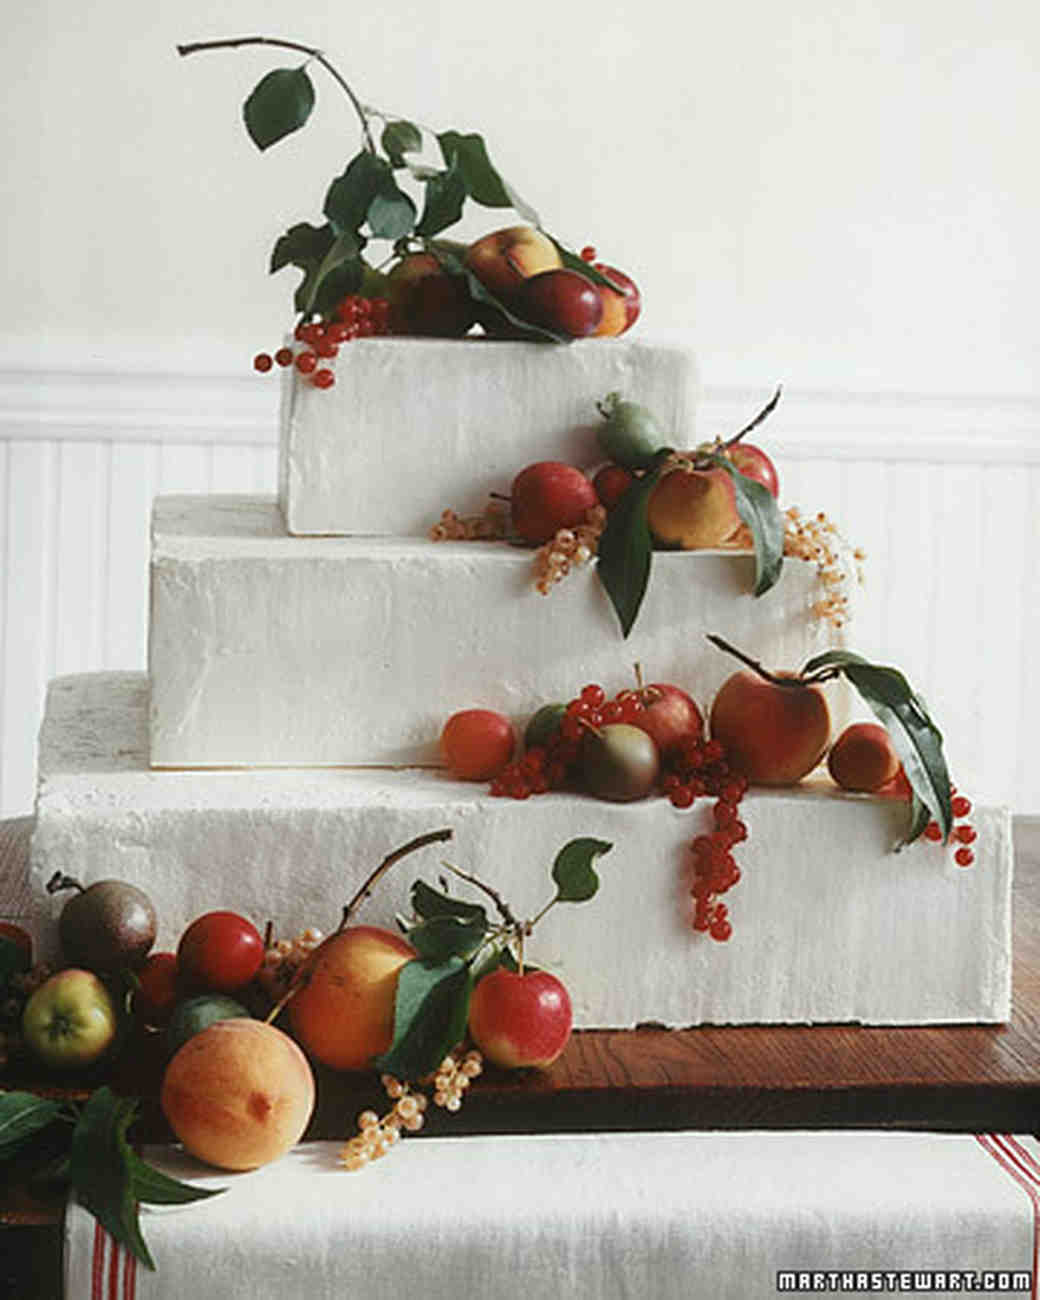 Wedding Cake with Orange and Red Fruits